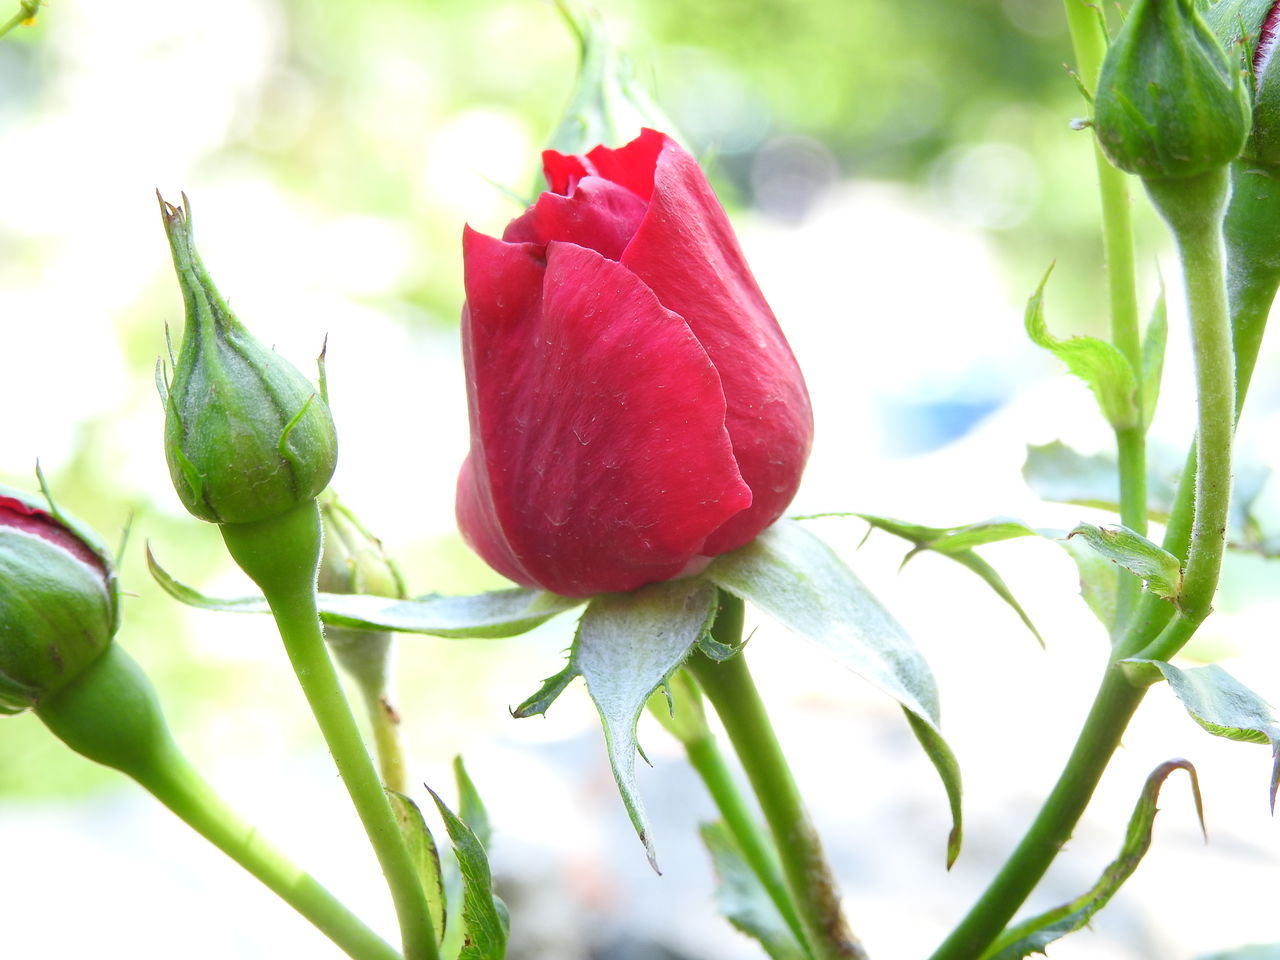 flower, nature, leaf, beauty in nature, freshness, plant, petal, fragility, red, no people, green color, growth, close-up, day, flower head, outdoors